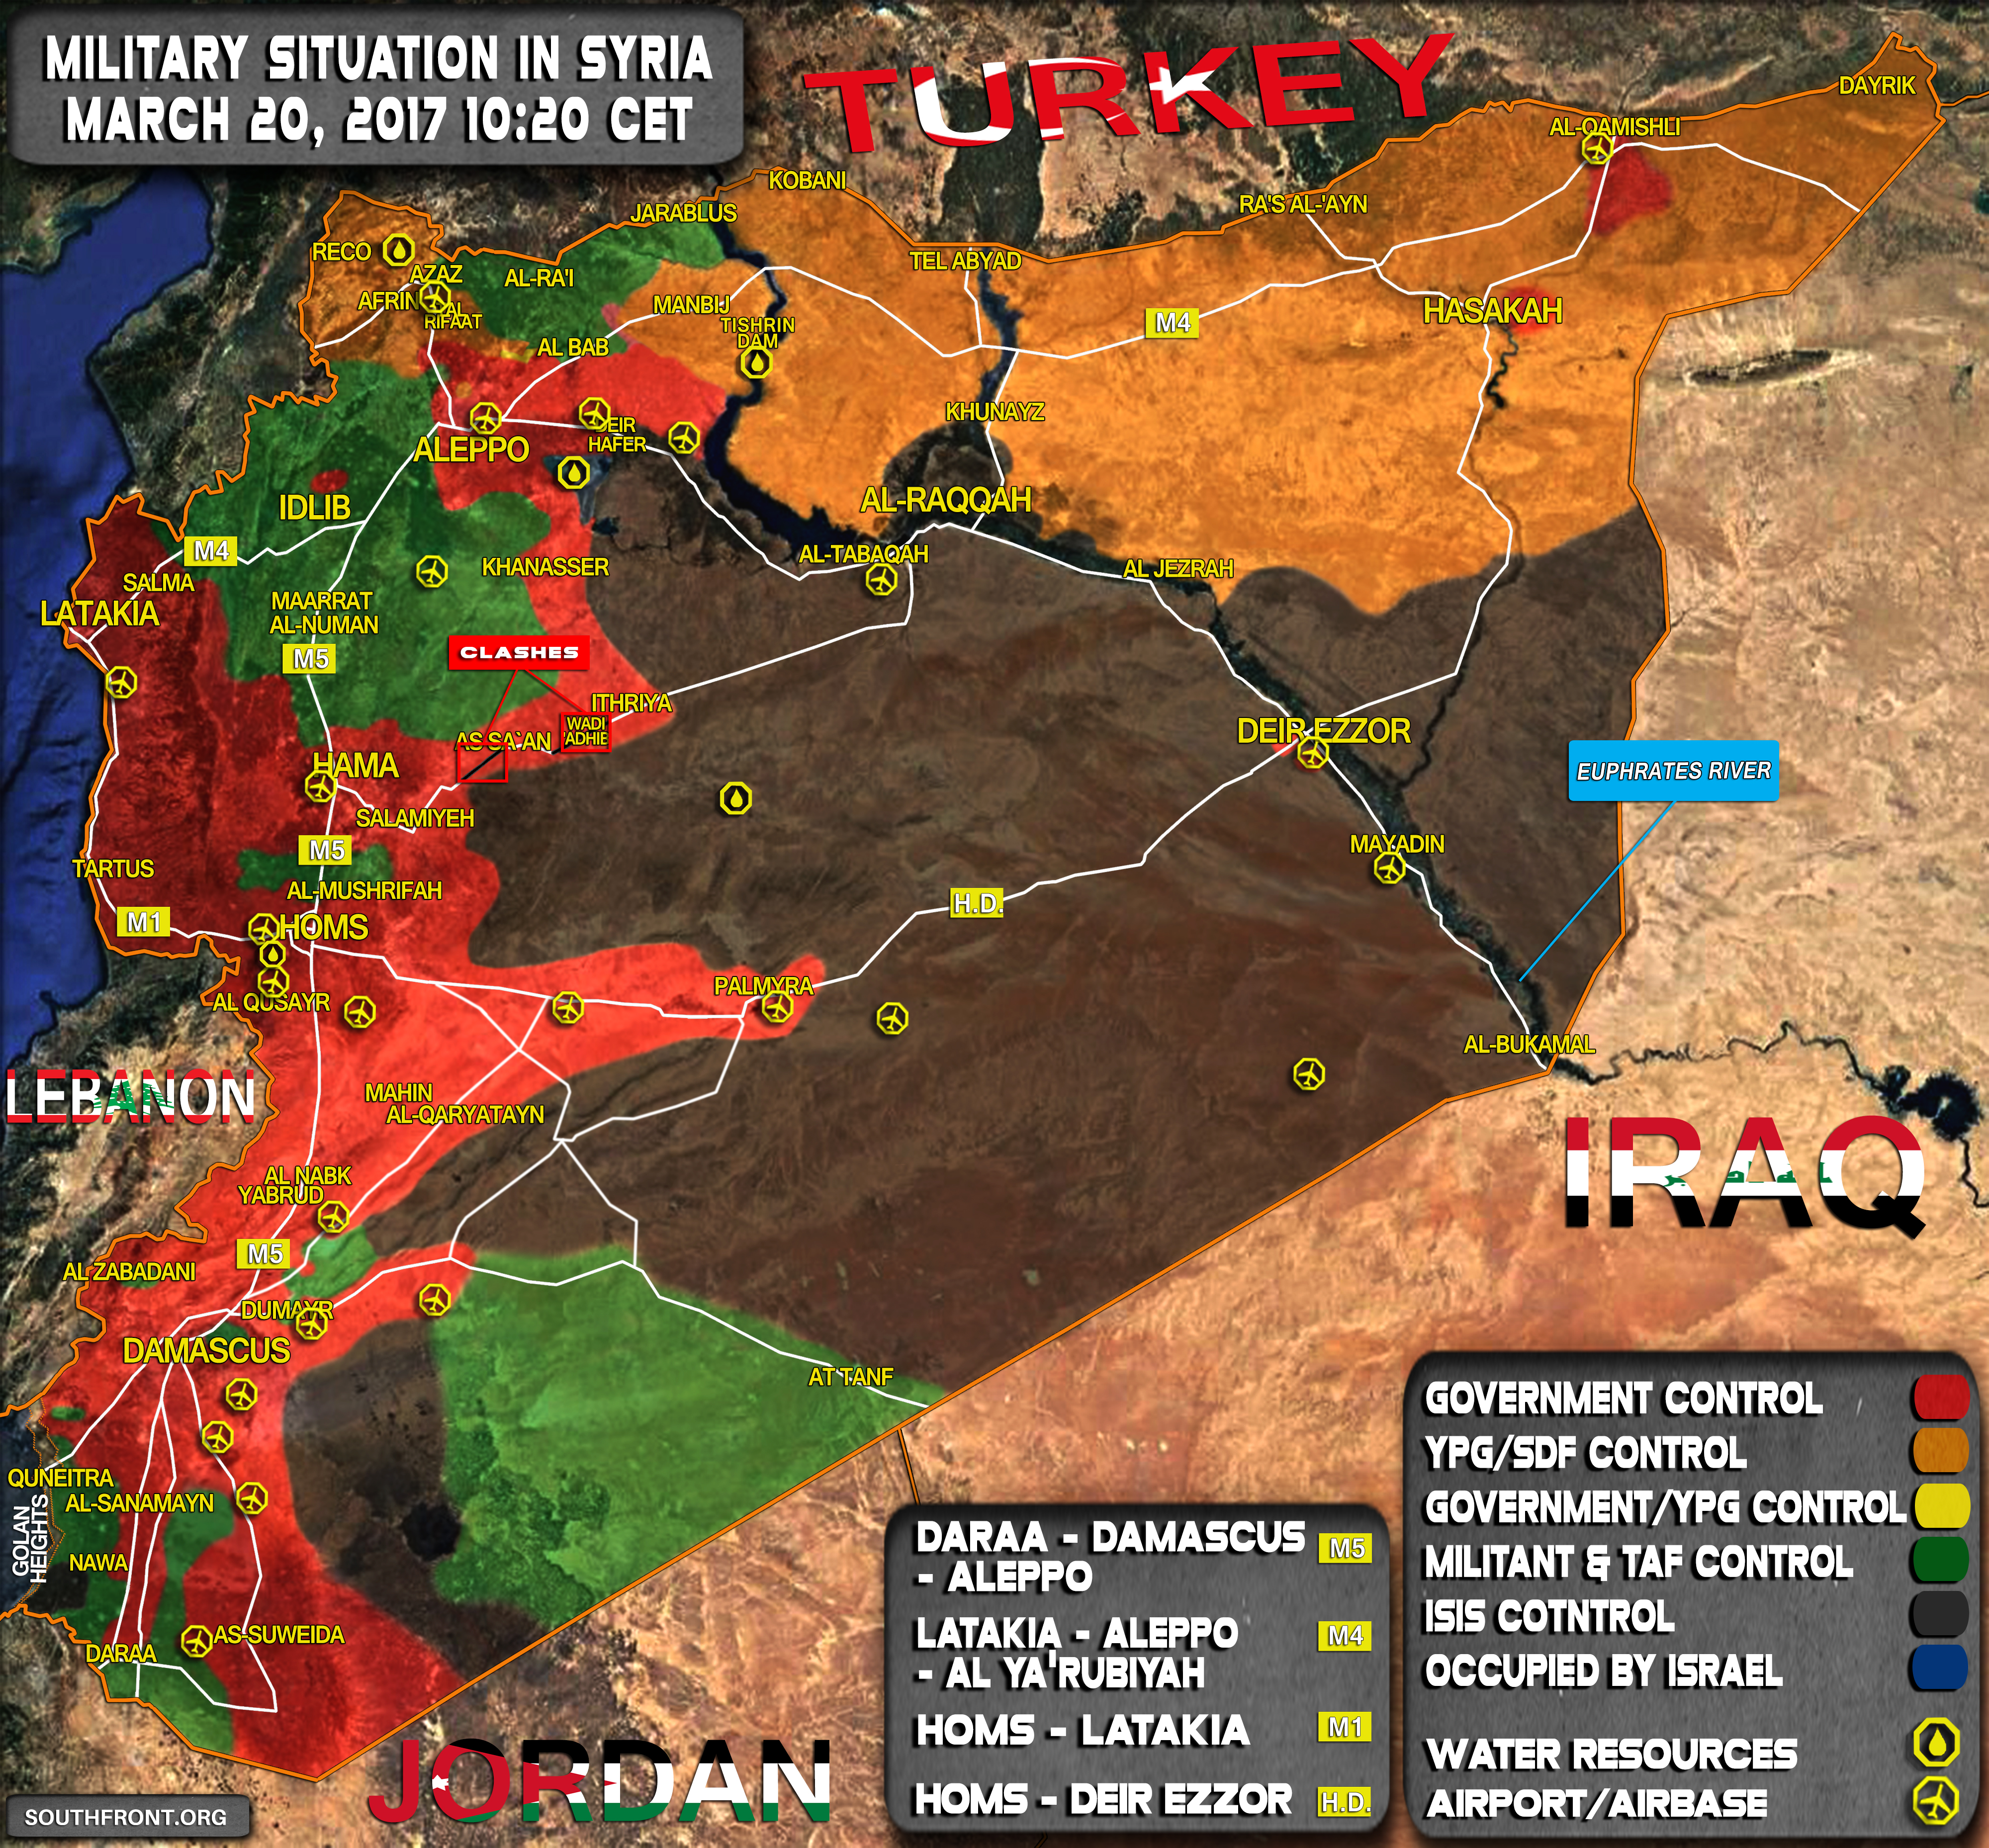 Military Situation In Syria On March 20, 2017 (Map Update)